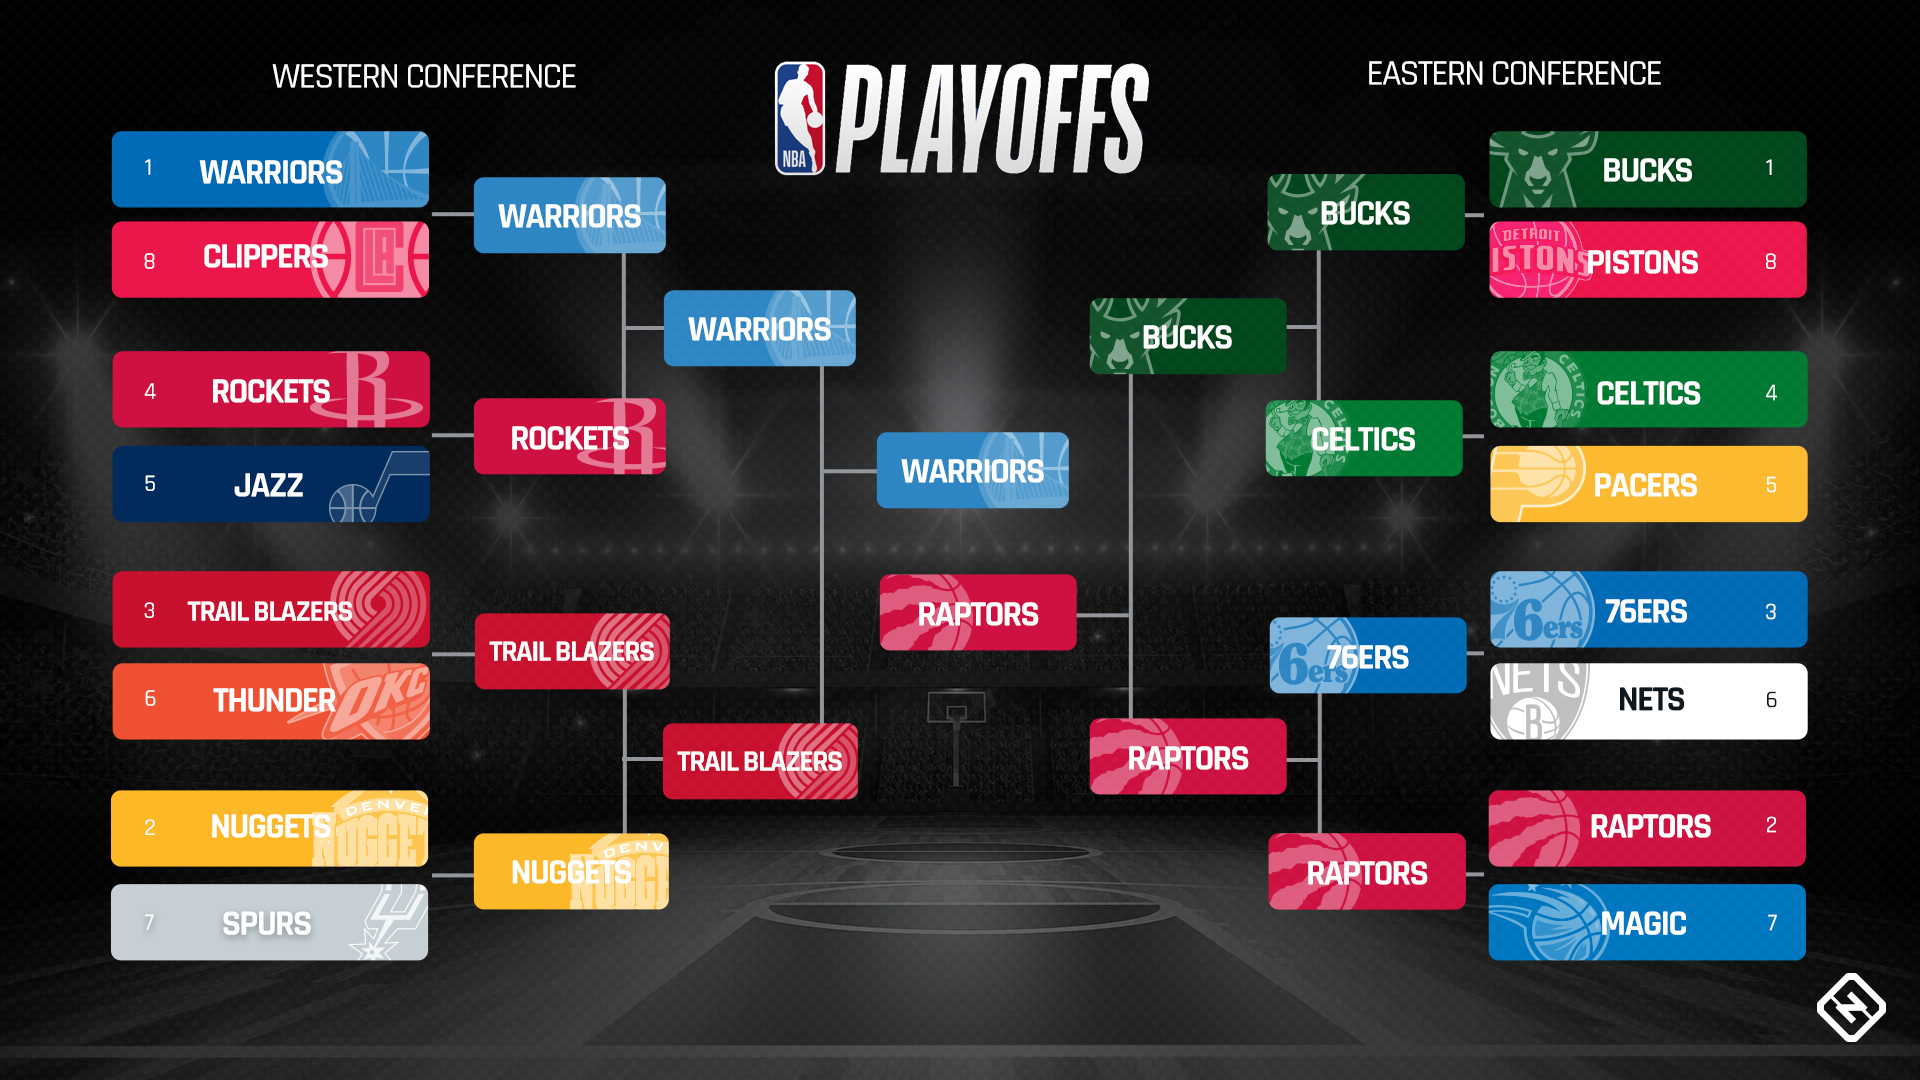 Nba Playoffs Schedule 2019 Full Bracket Dates Times Tv Channels For Every Series Sporting News